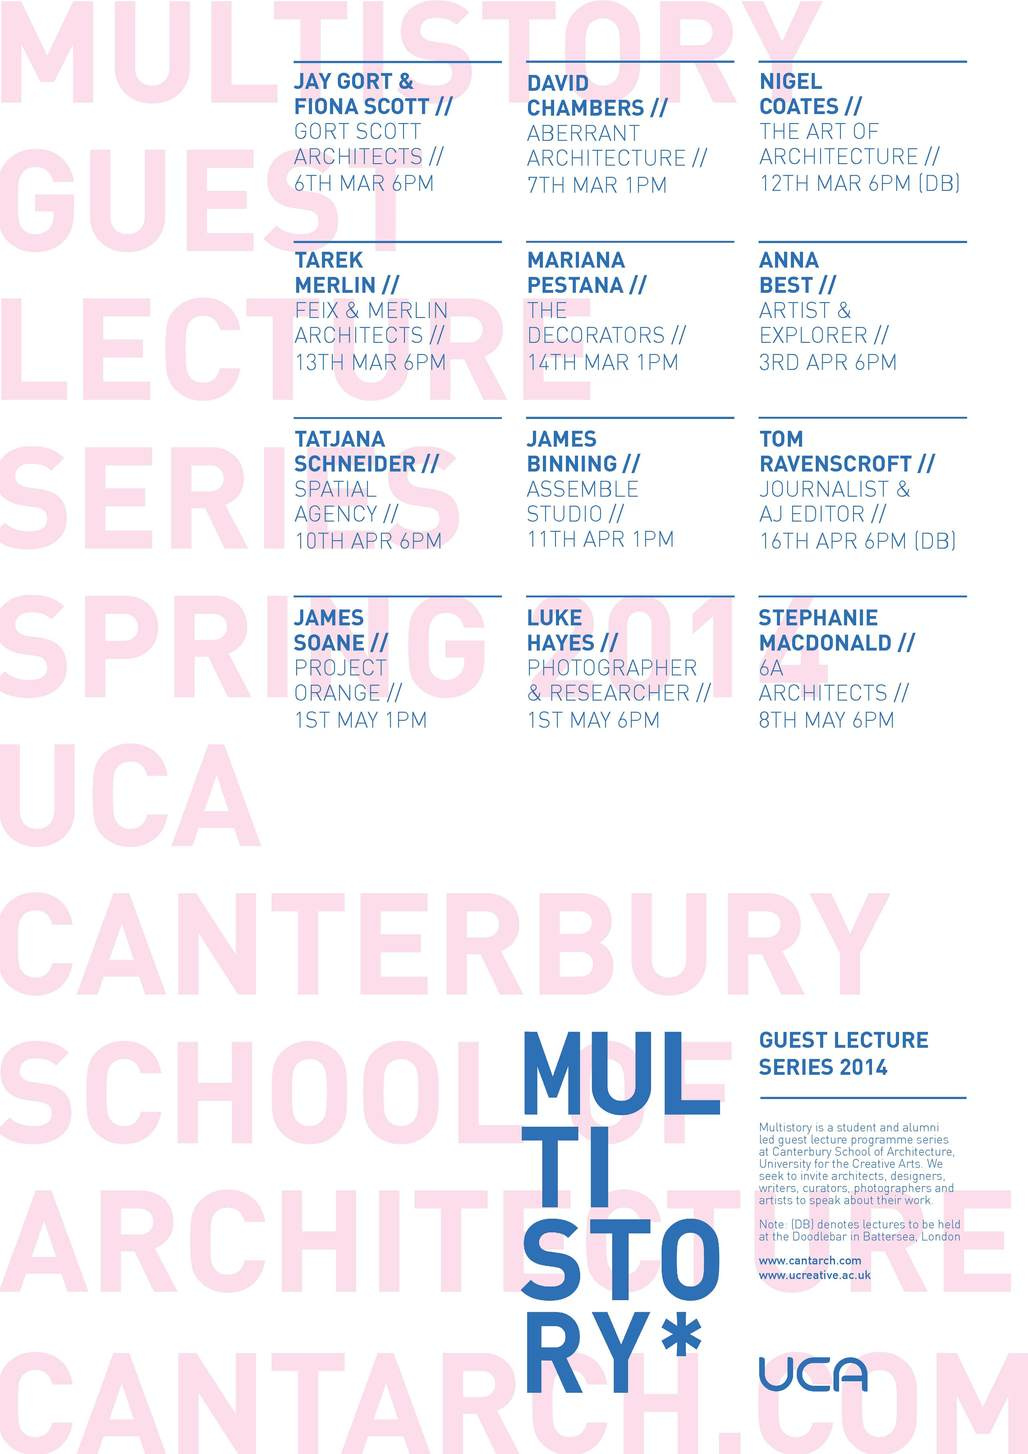 Multistory Spring 14 Lecture Series at the UCA Canterbury School of Architecture. Image via cantarch.com.